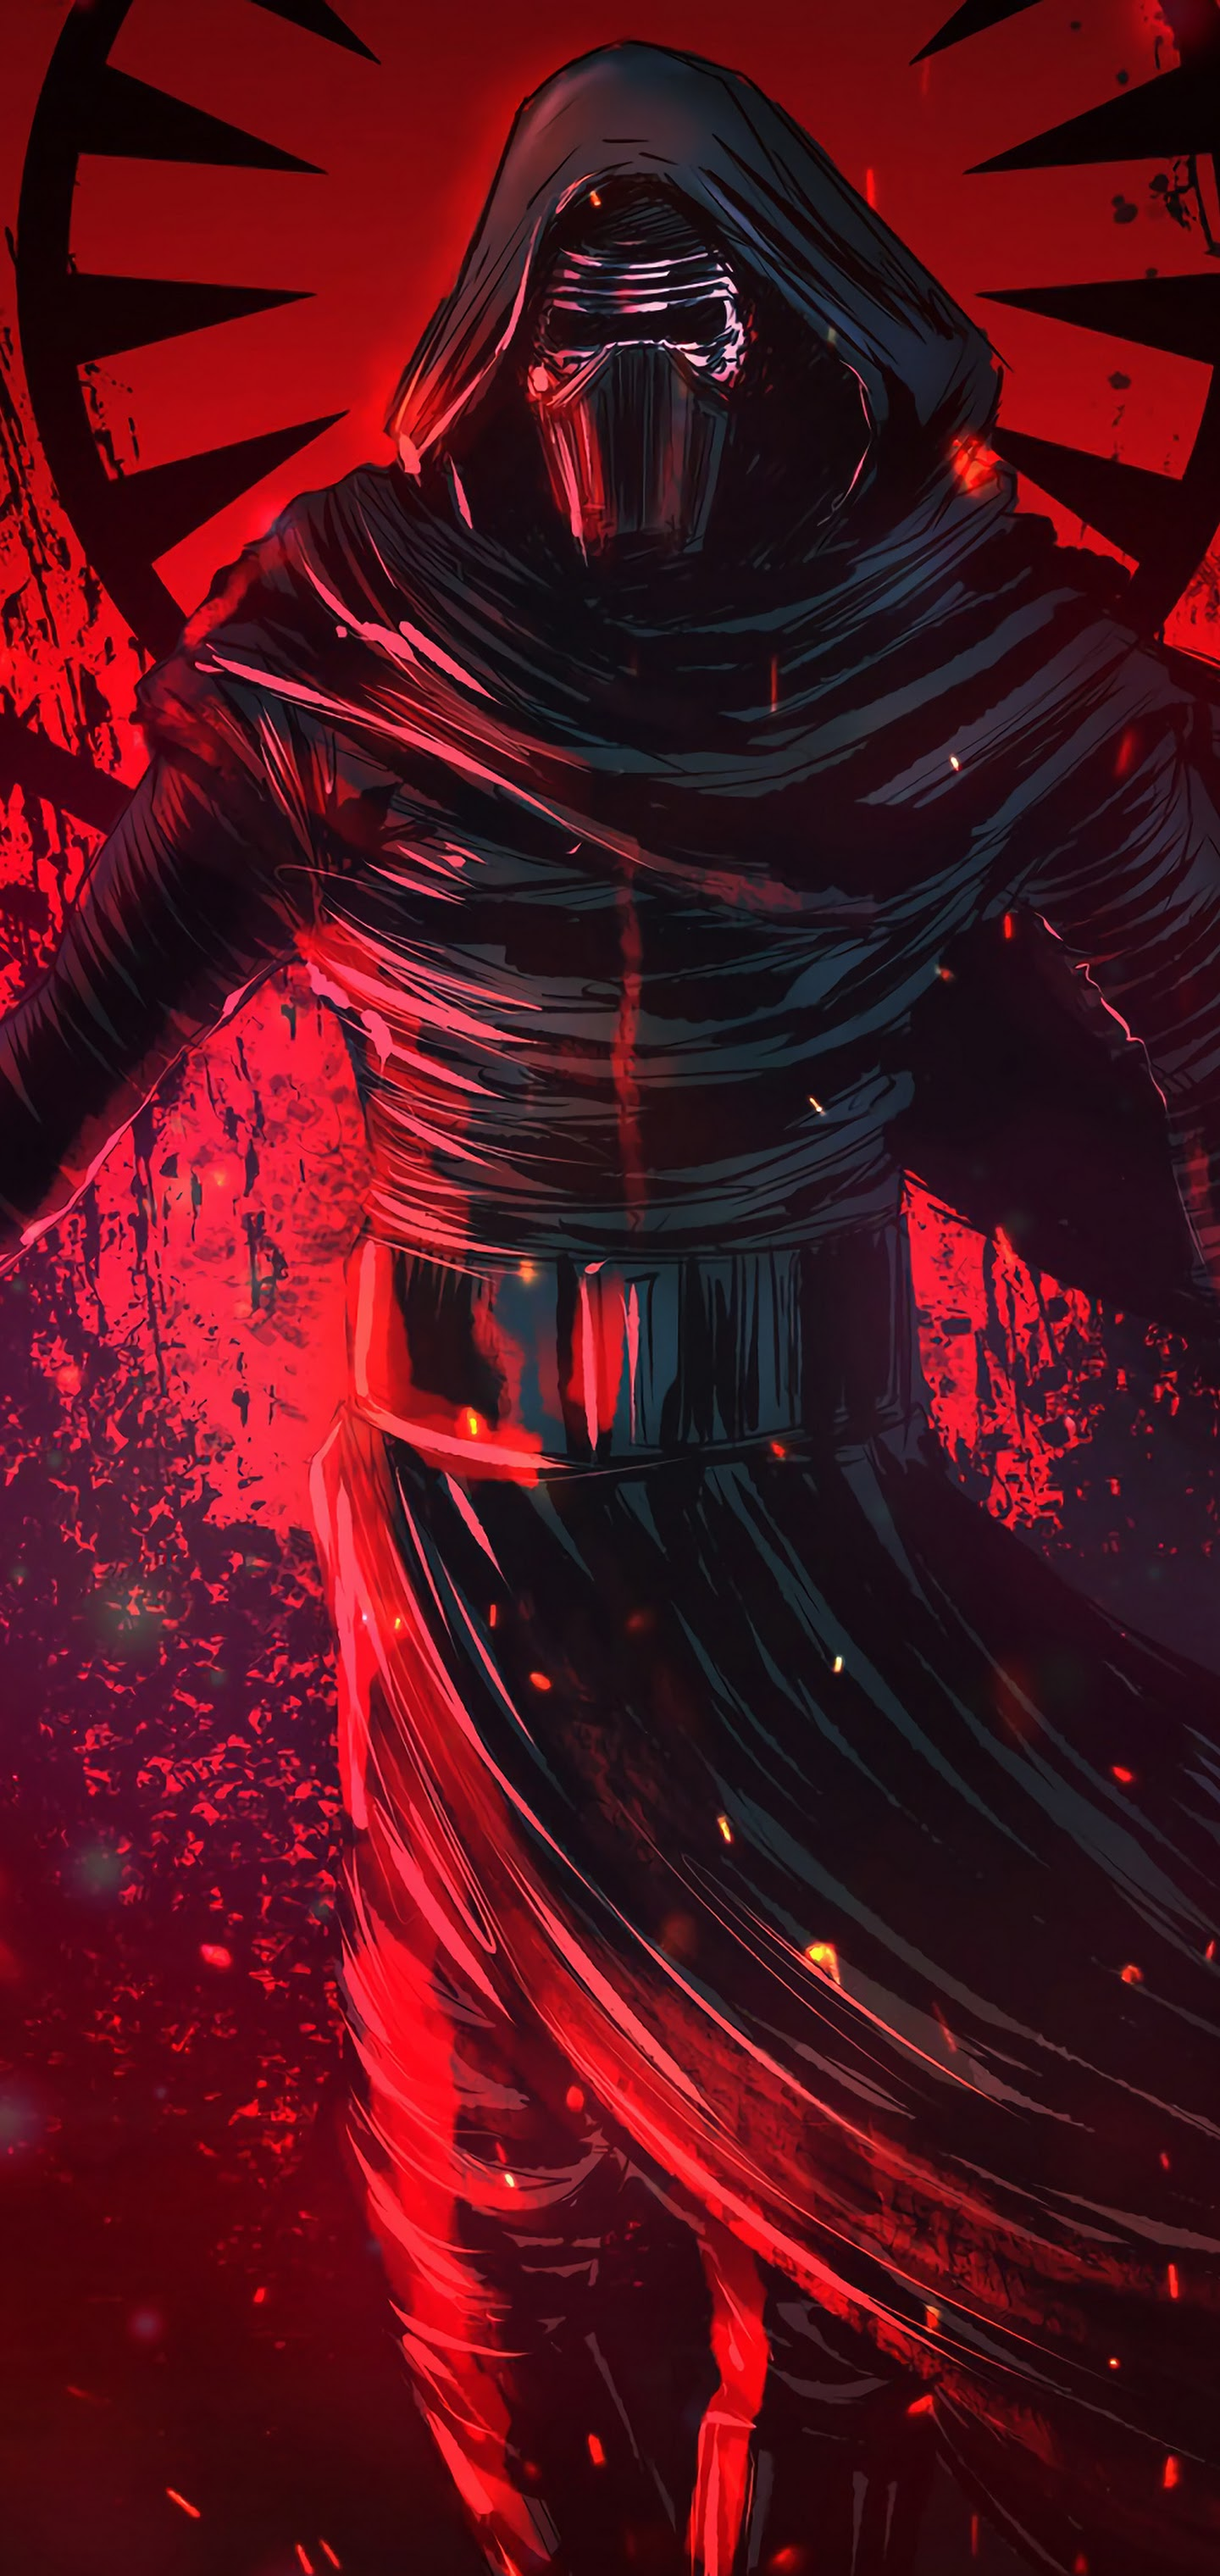 Kylo Ren Lightsaber Star Wars 4k 3840x2160 Star Wars Wallpaper Iphone 11 1440x3040 Wallpaper Teahub Io